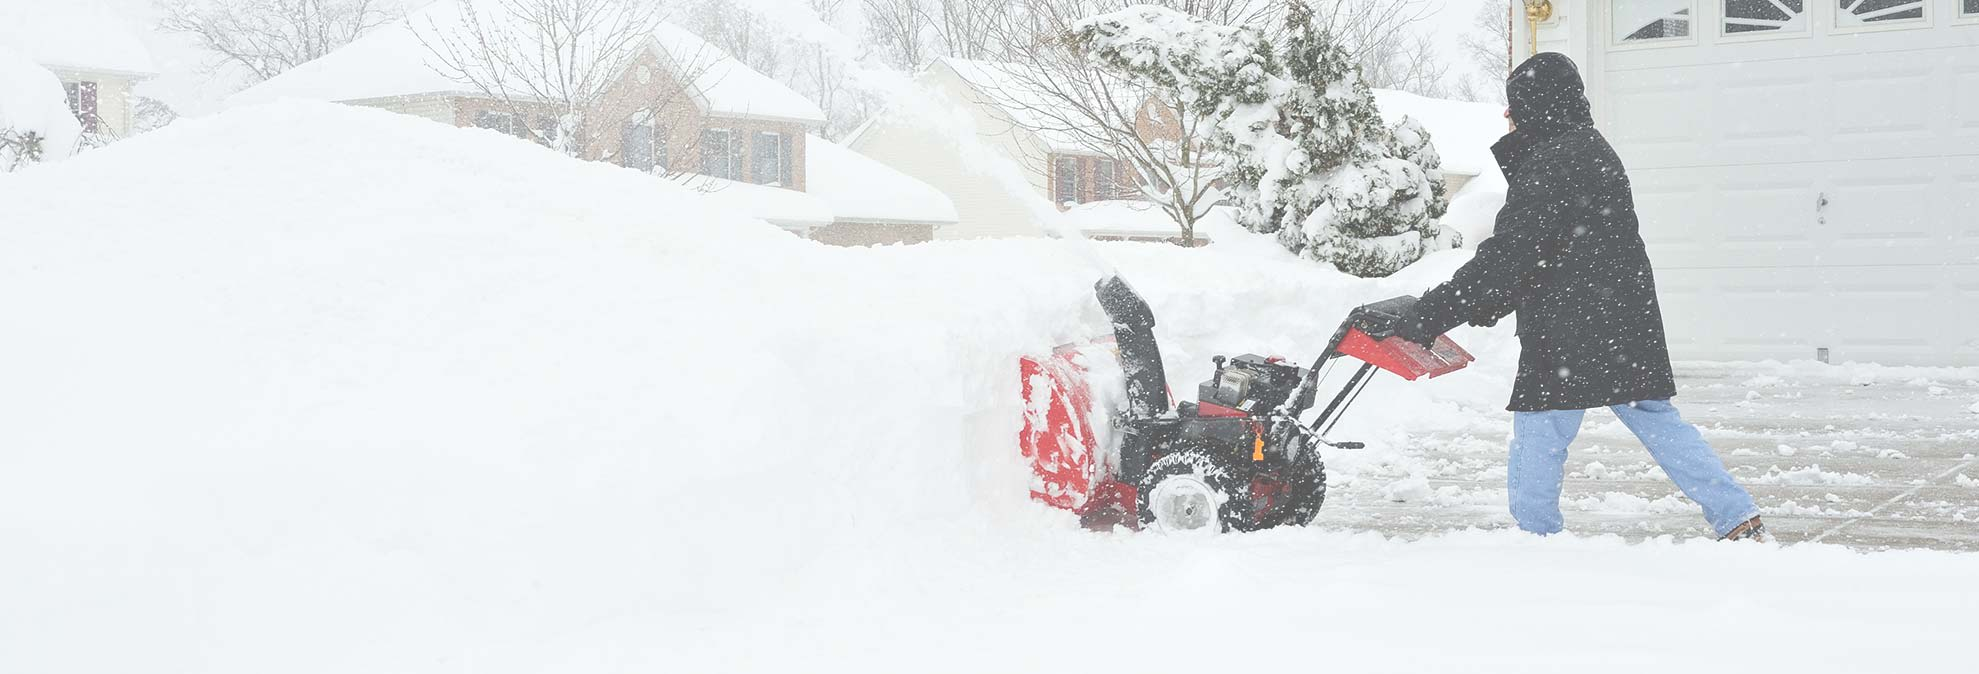 Superb 5 Easy Fixes For The Most Common Snow Blower Problems Consumer Reports Wiring Cloud Orsalboapumohammedshrineorg